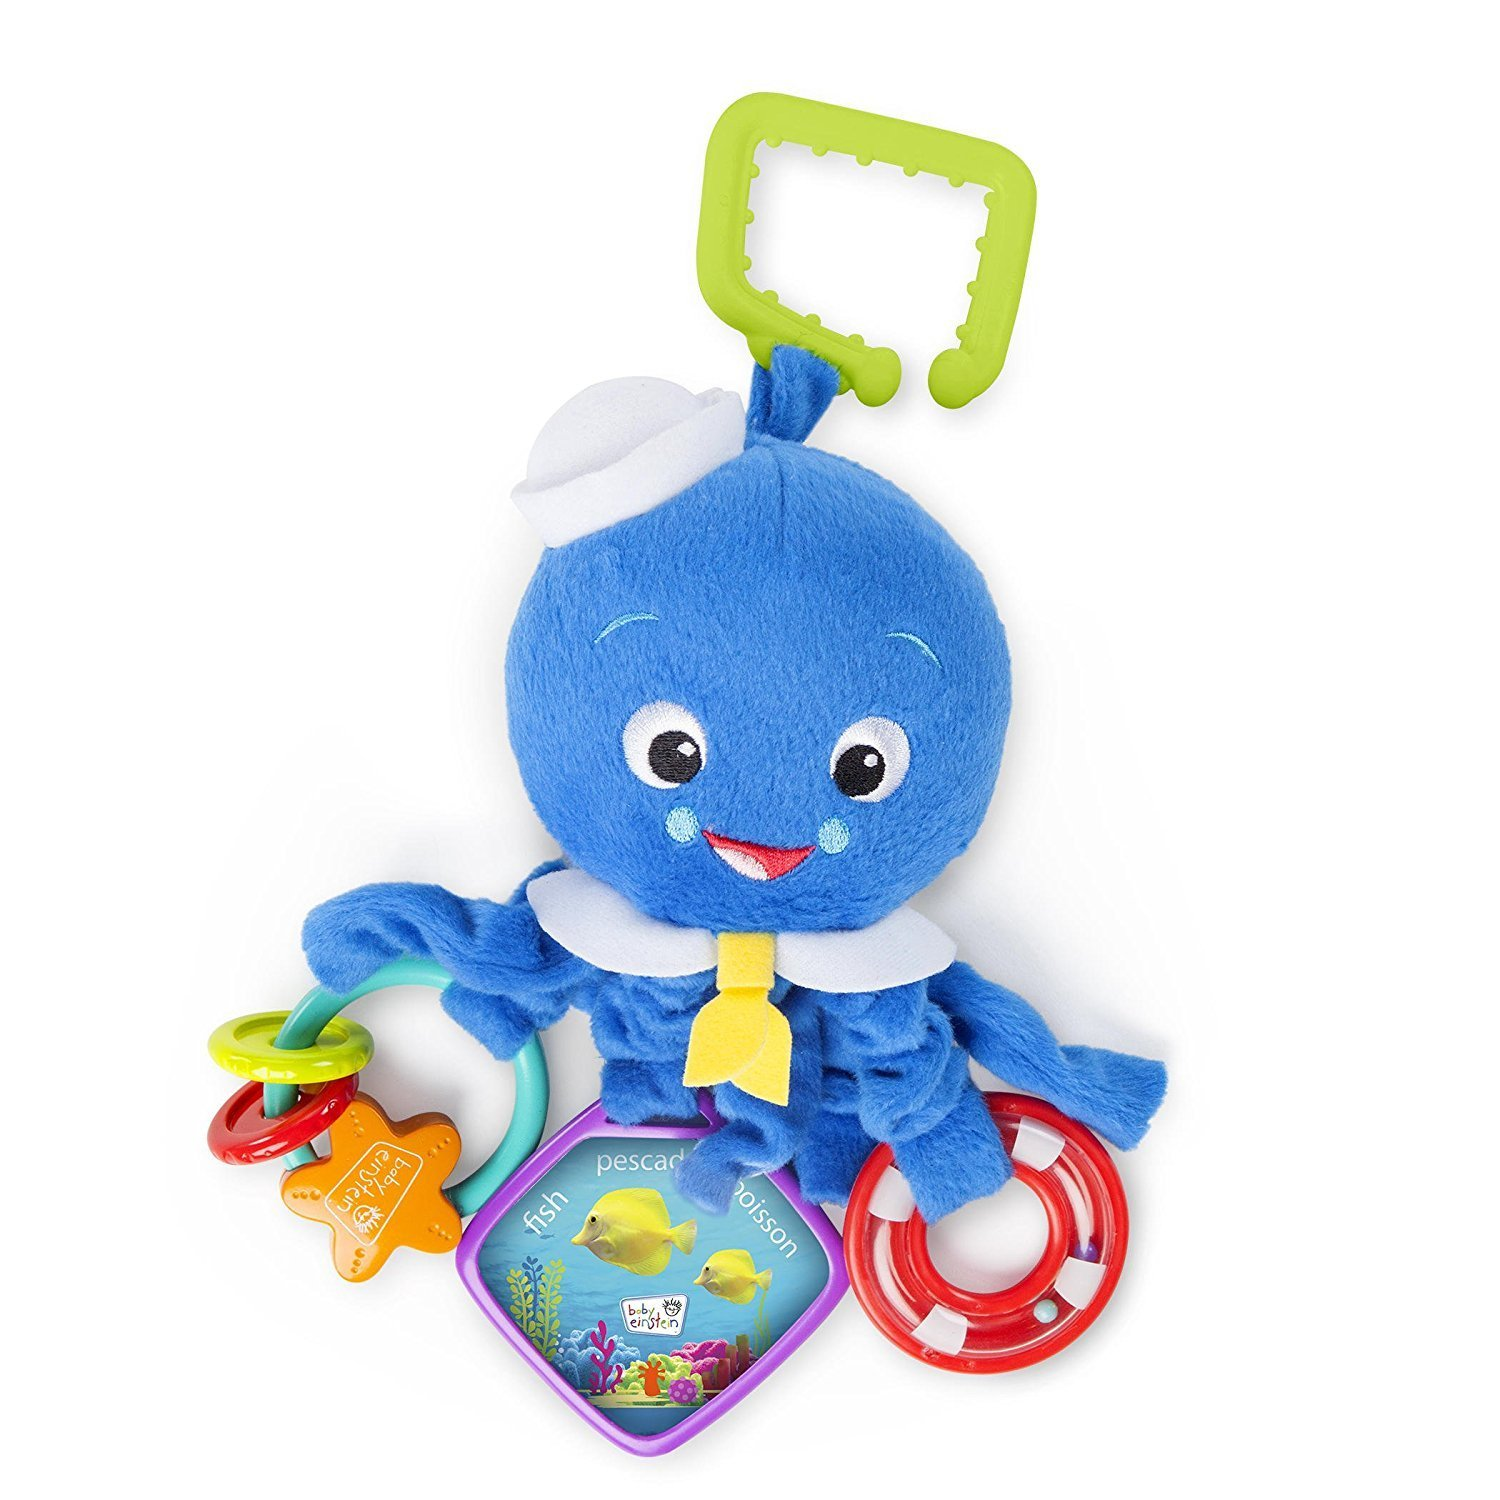 Soft, Multiple Activities Arms Octopus Plush Toy, Features ring rattle and starfish bead... by